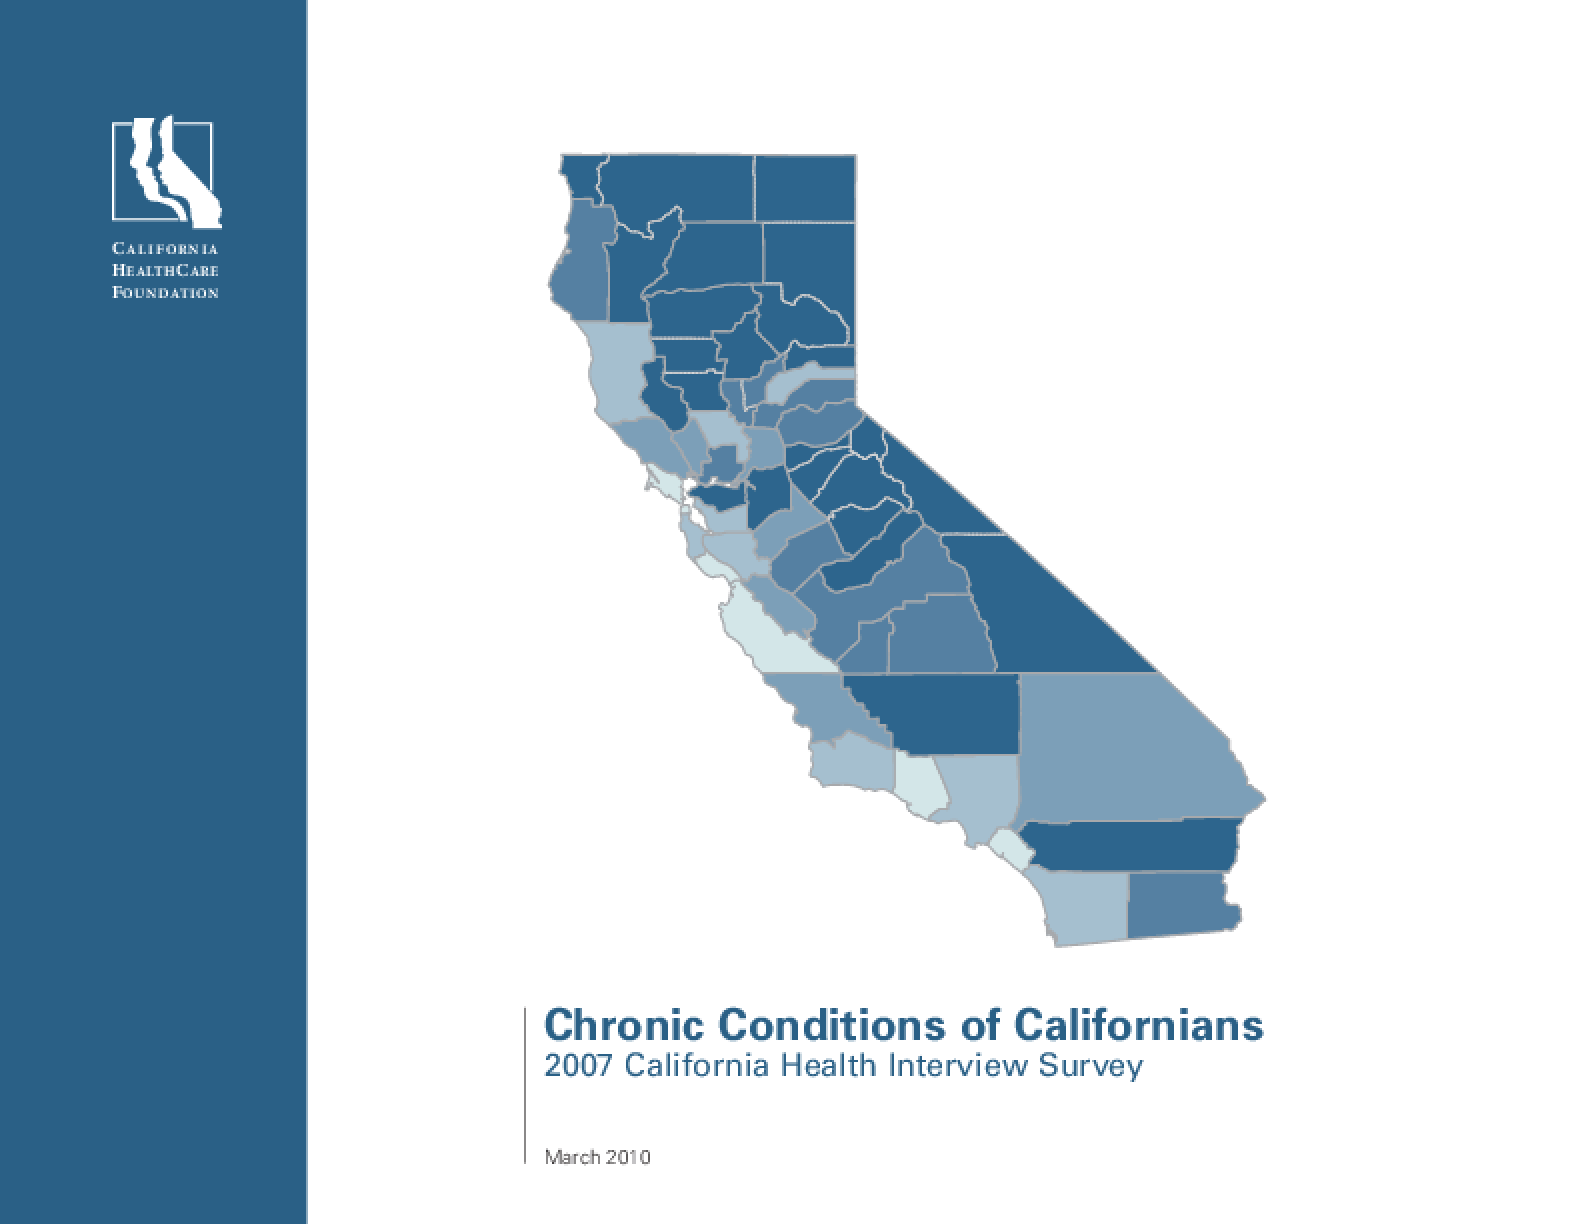 Chronic Conditions of Californians: 2007 California Health Interview Survey